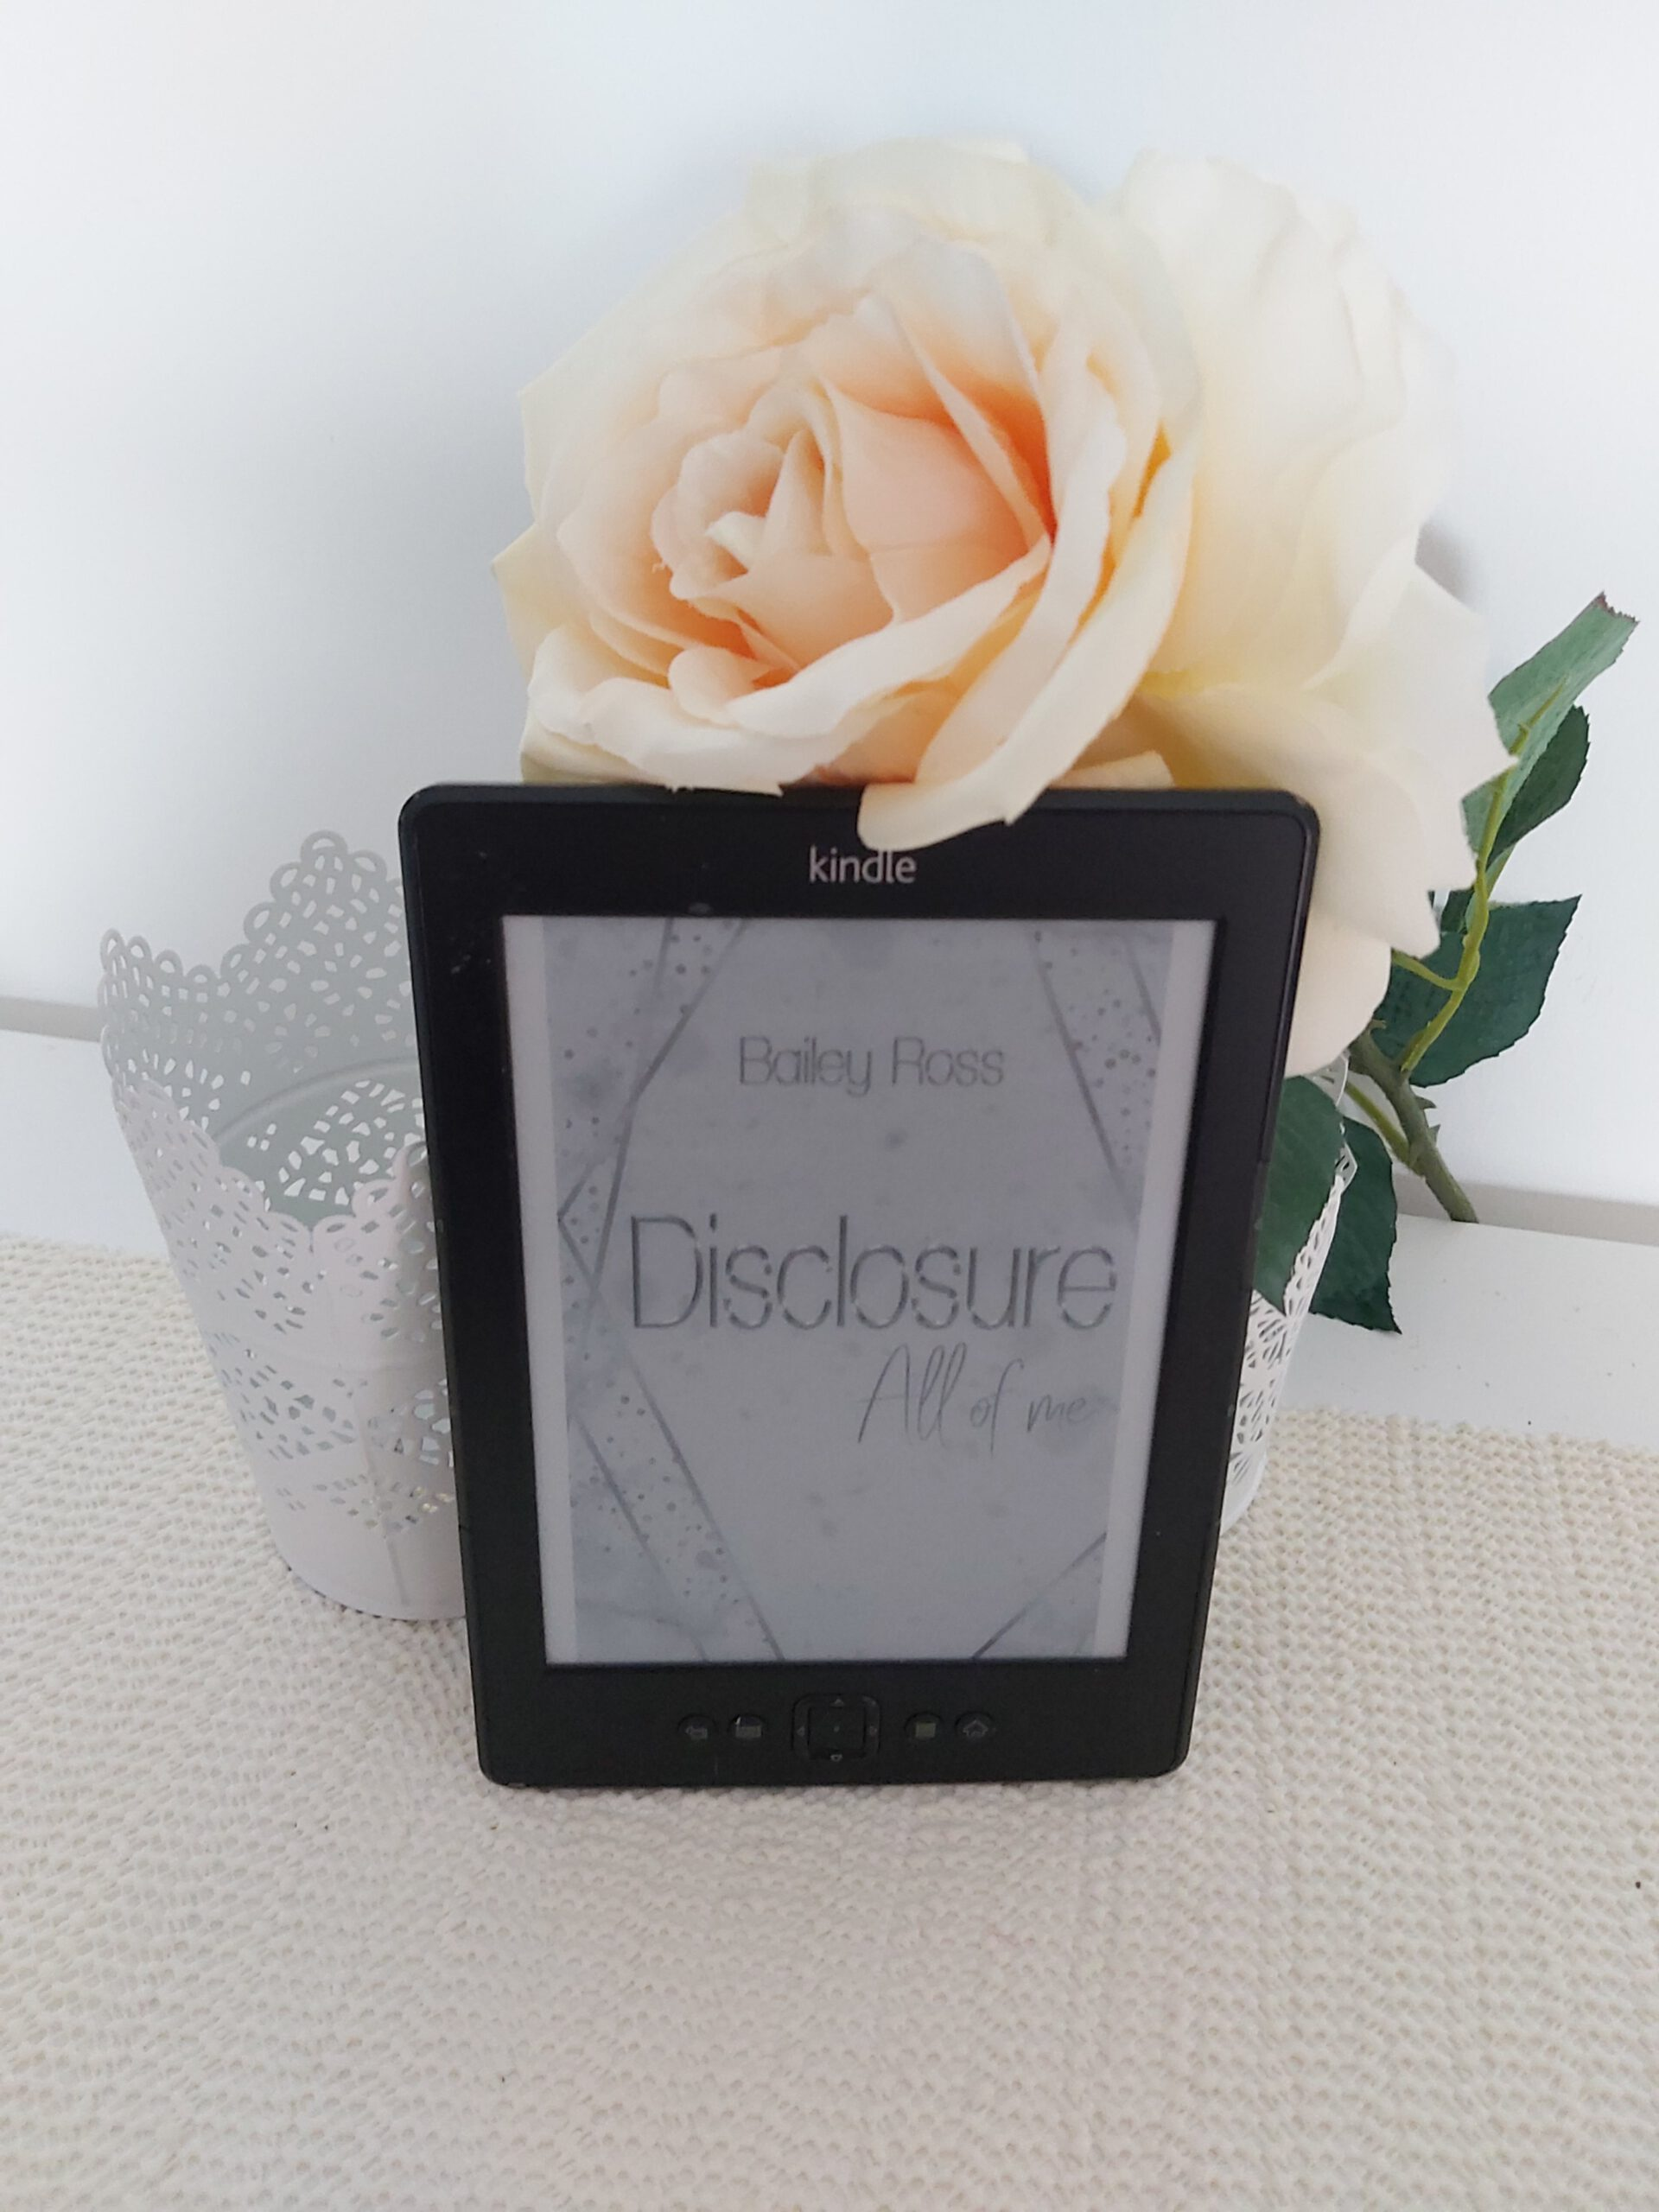 Rezension zu Disclosure: All of me